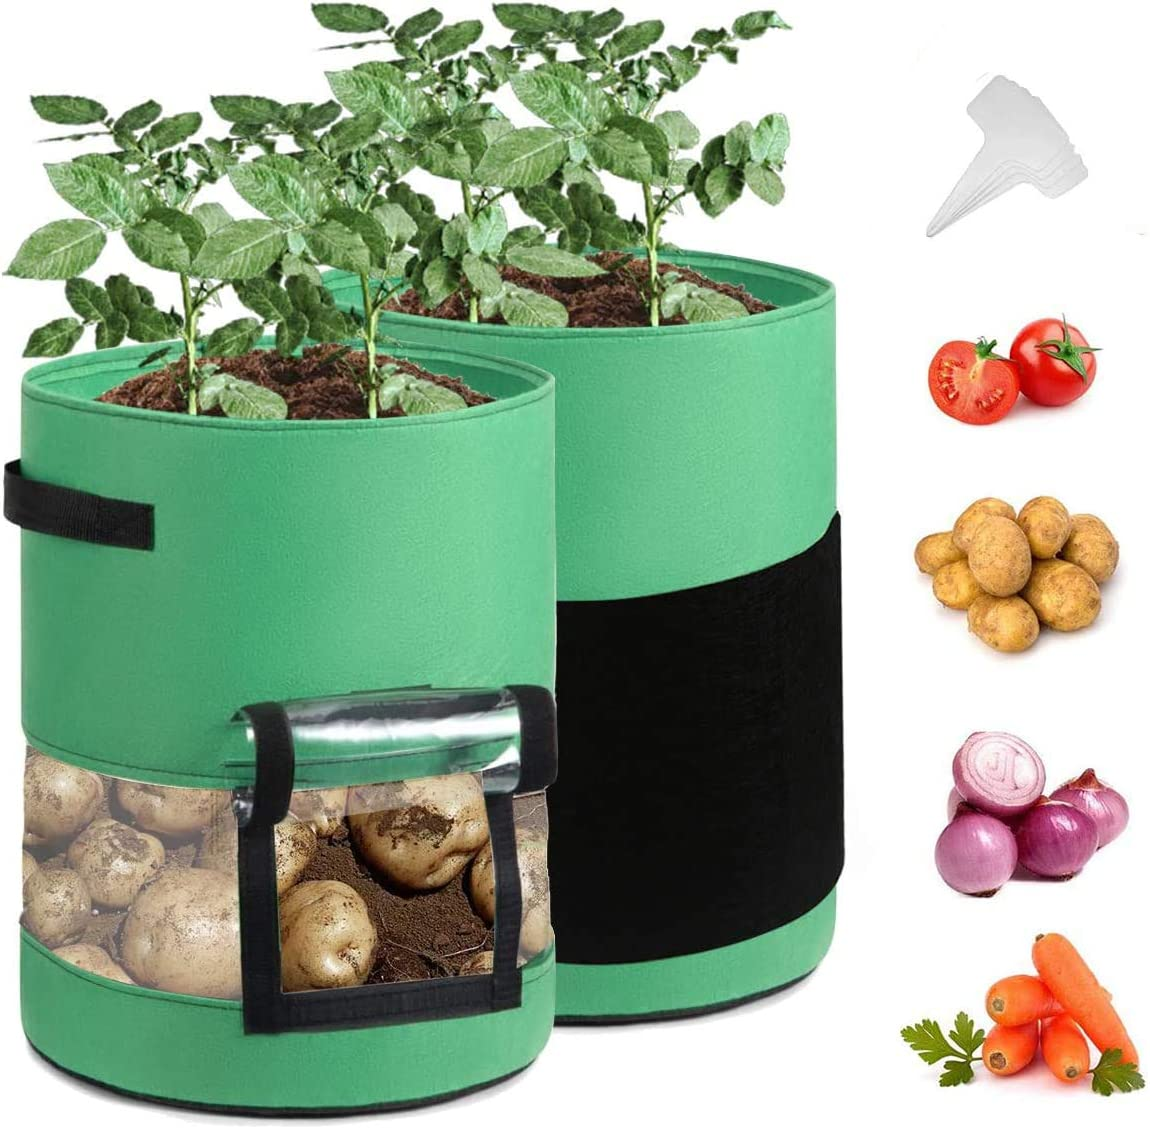 Potato Grow Bags ,Garden Vegetable Planter with Handles&Harvest Flap for Vegetables, Tomatoes, Carrots, Onions